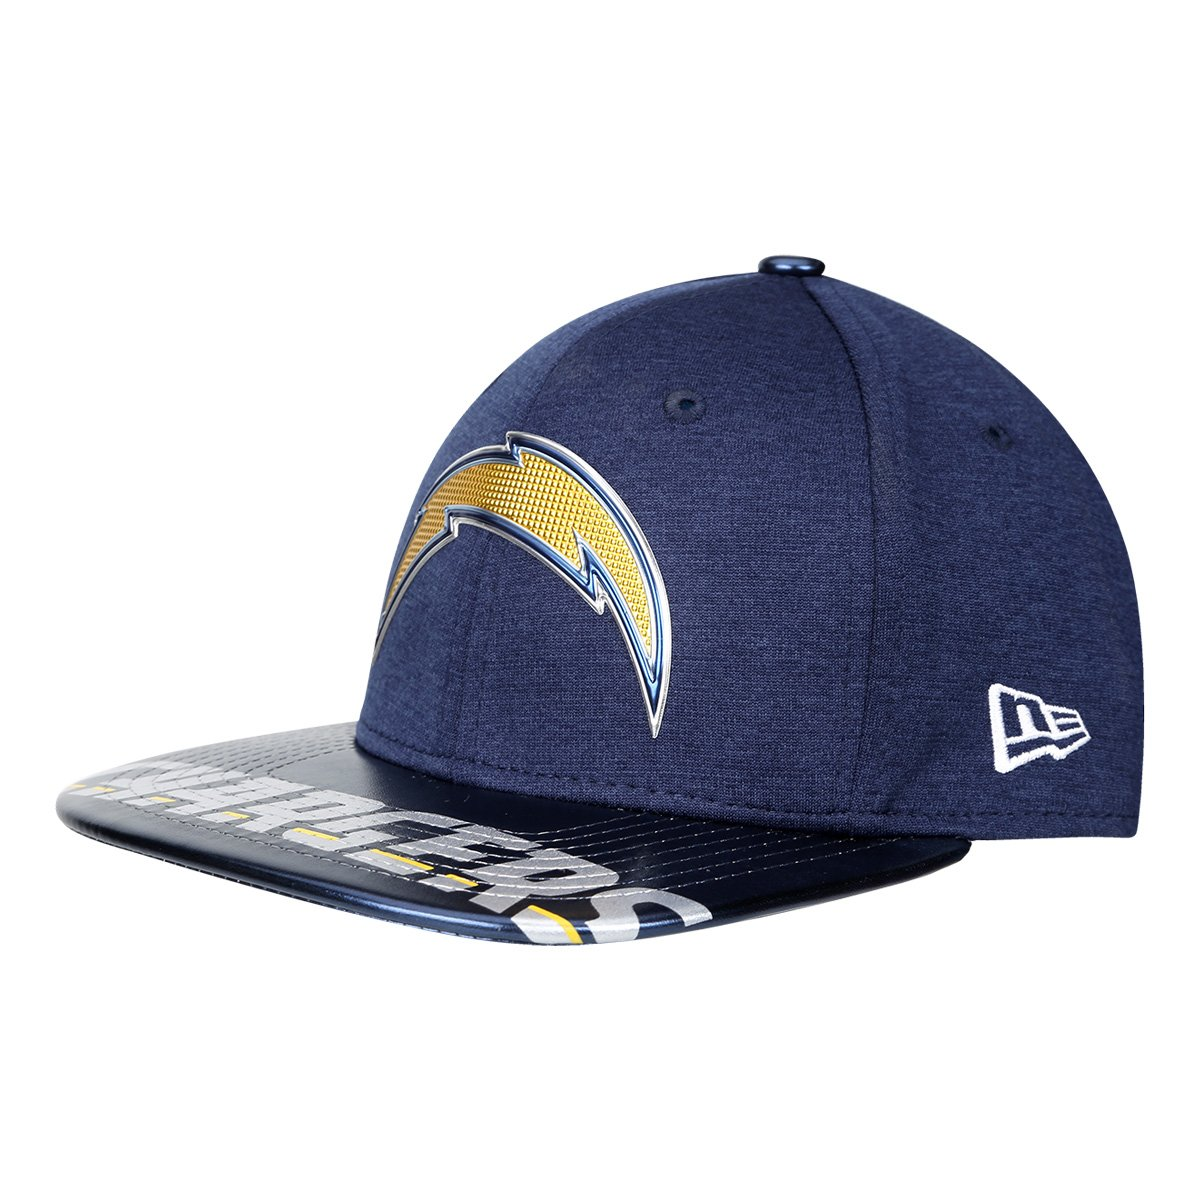 7fff1df45a1c4 Boné New Era NFL Los Angeles Chargers Aba Reta 950 Original Fit Sn On Stage  Masculino - Marinho - Compre Agora